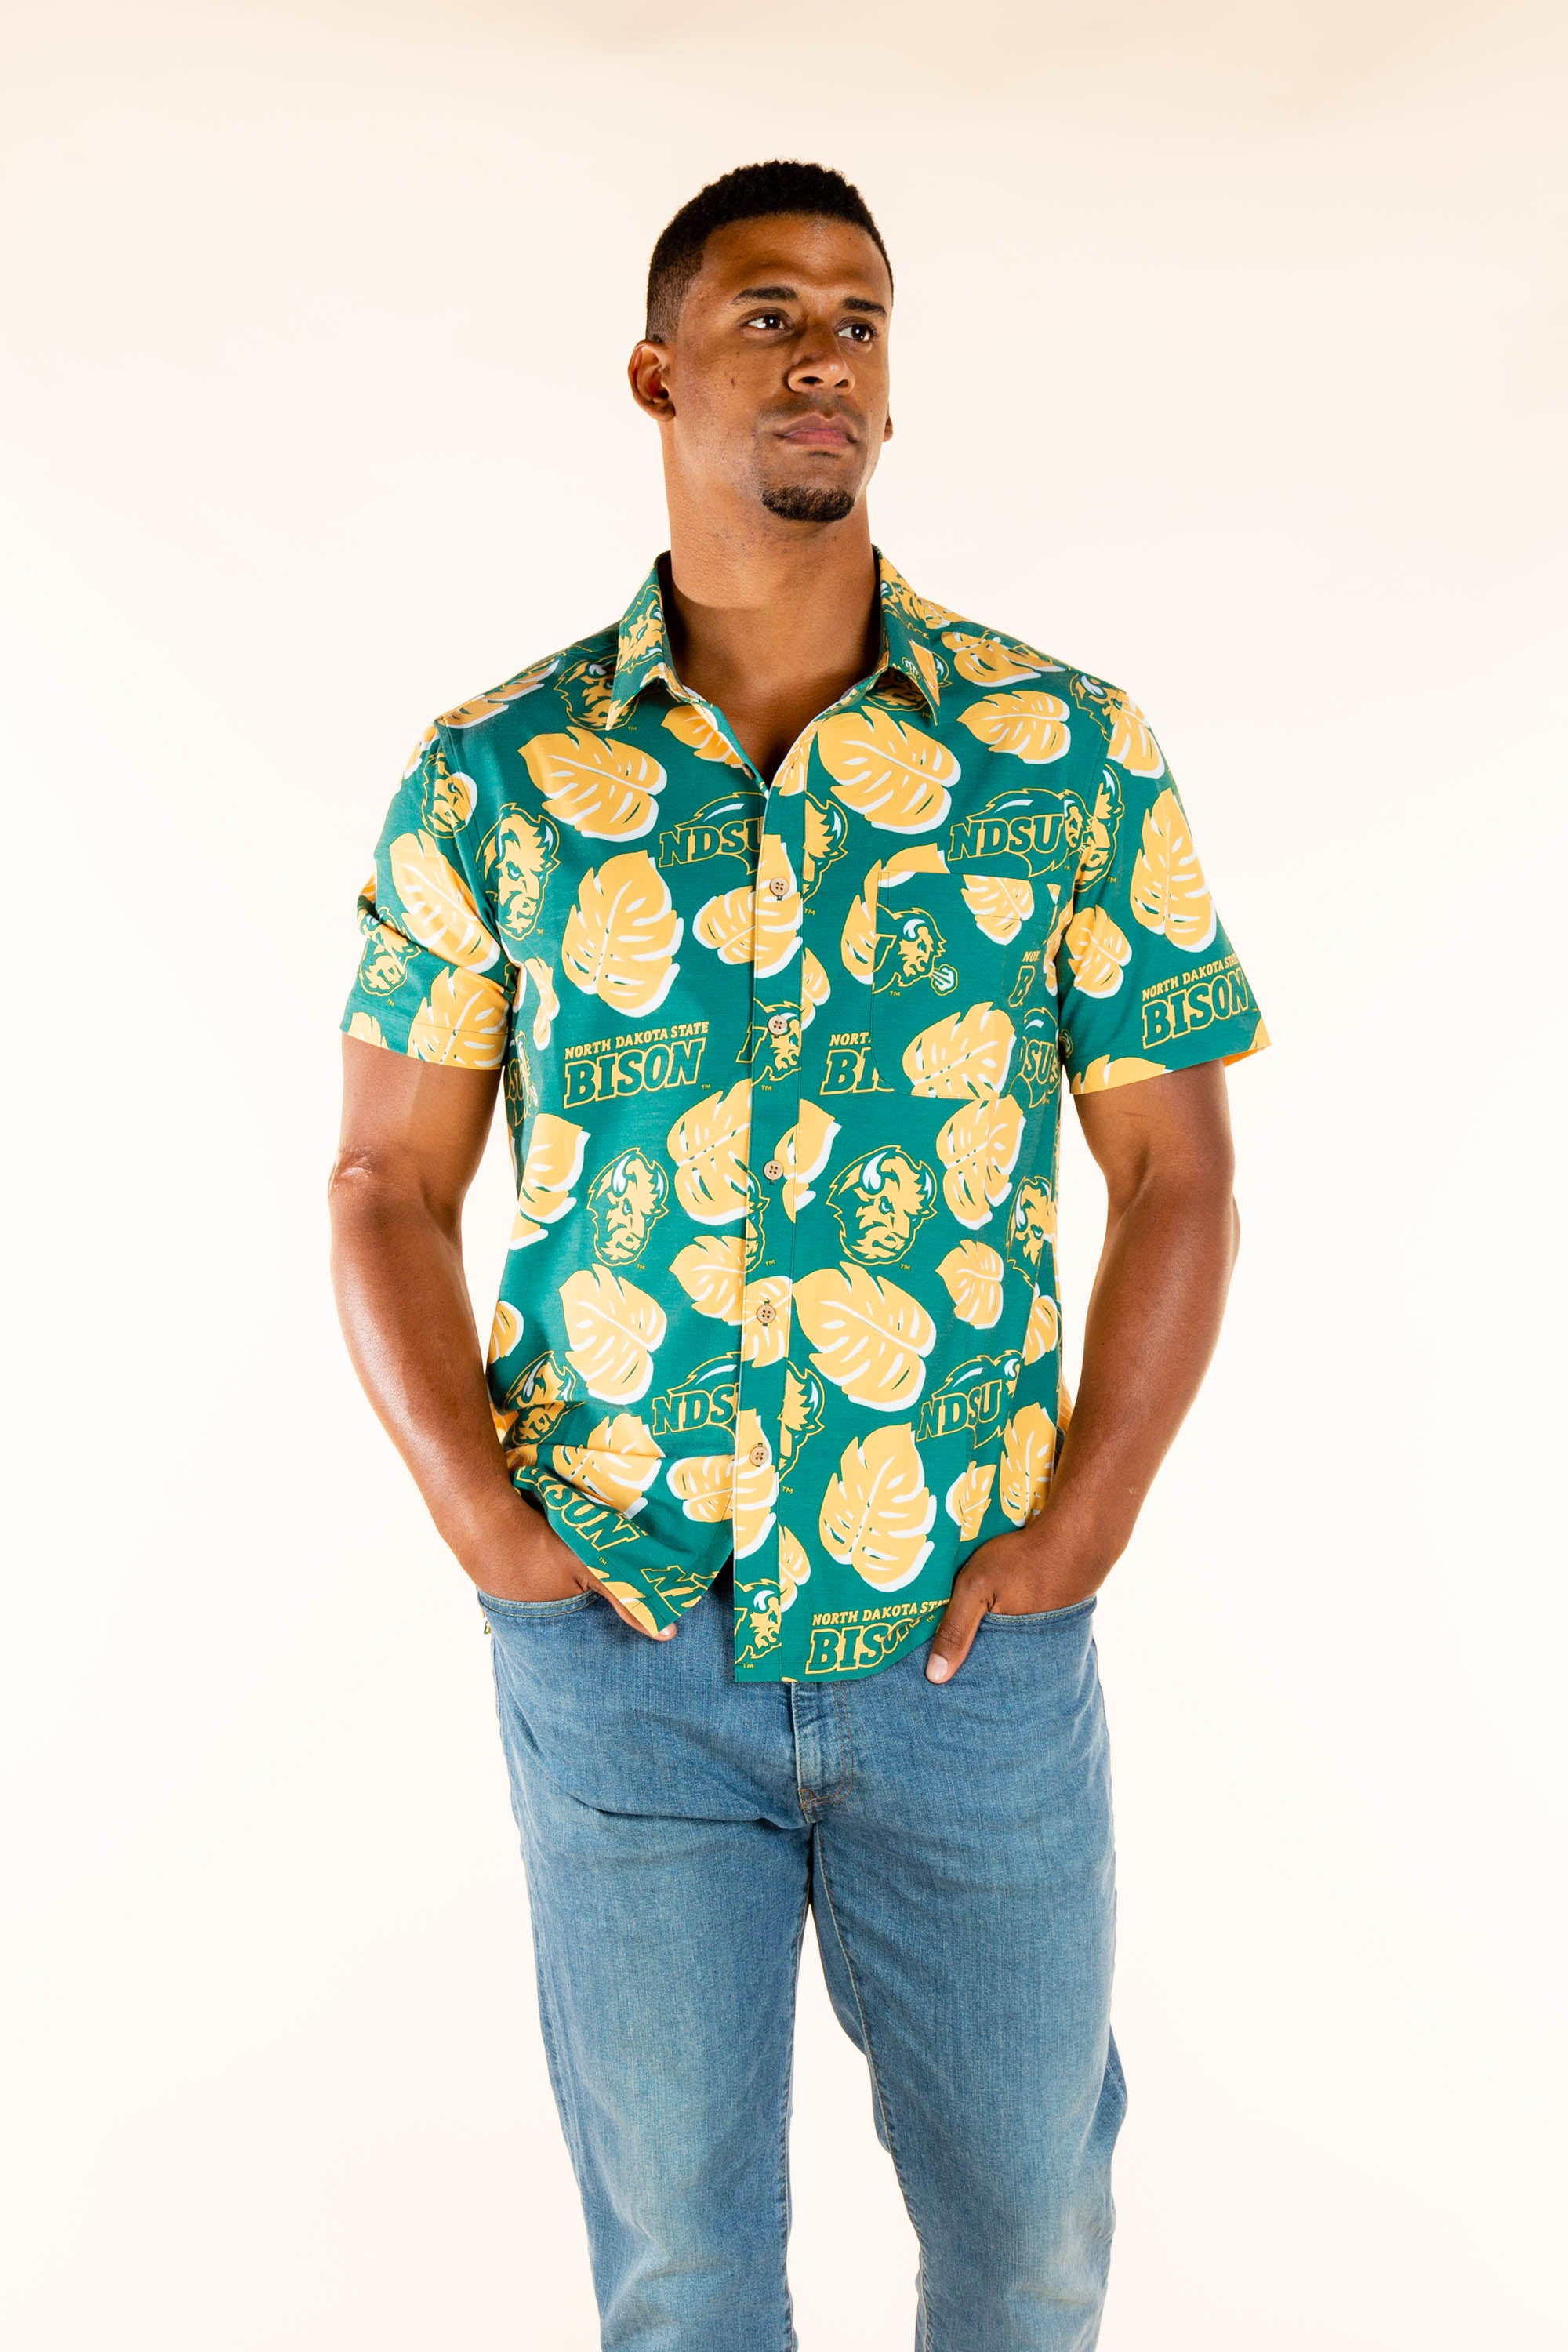 NDSU Button Up Bisons Shirt